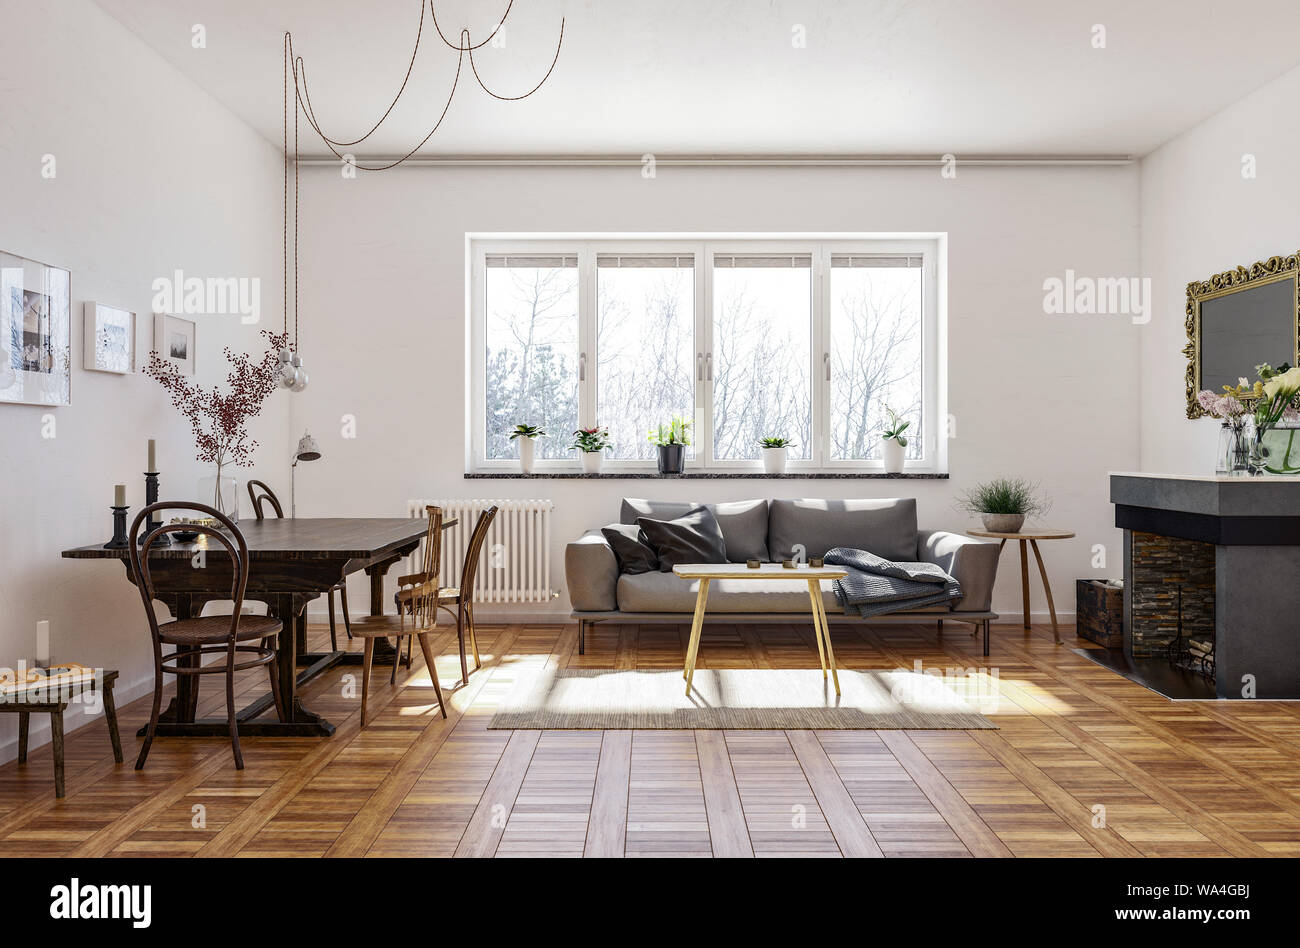 https www alamy com spacious living room with vintage style hardwood parquet floor a fireplace with mirror dining table and chairs and sofa under a sunny window 3d ren image264402758 html